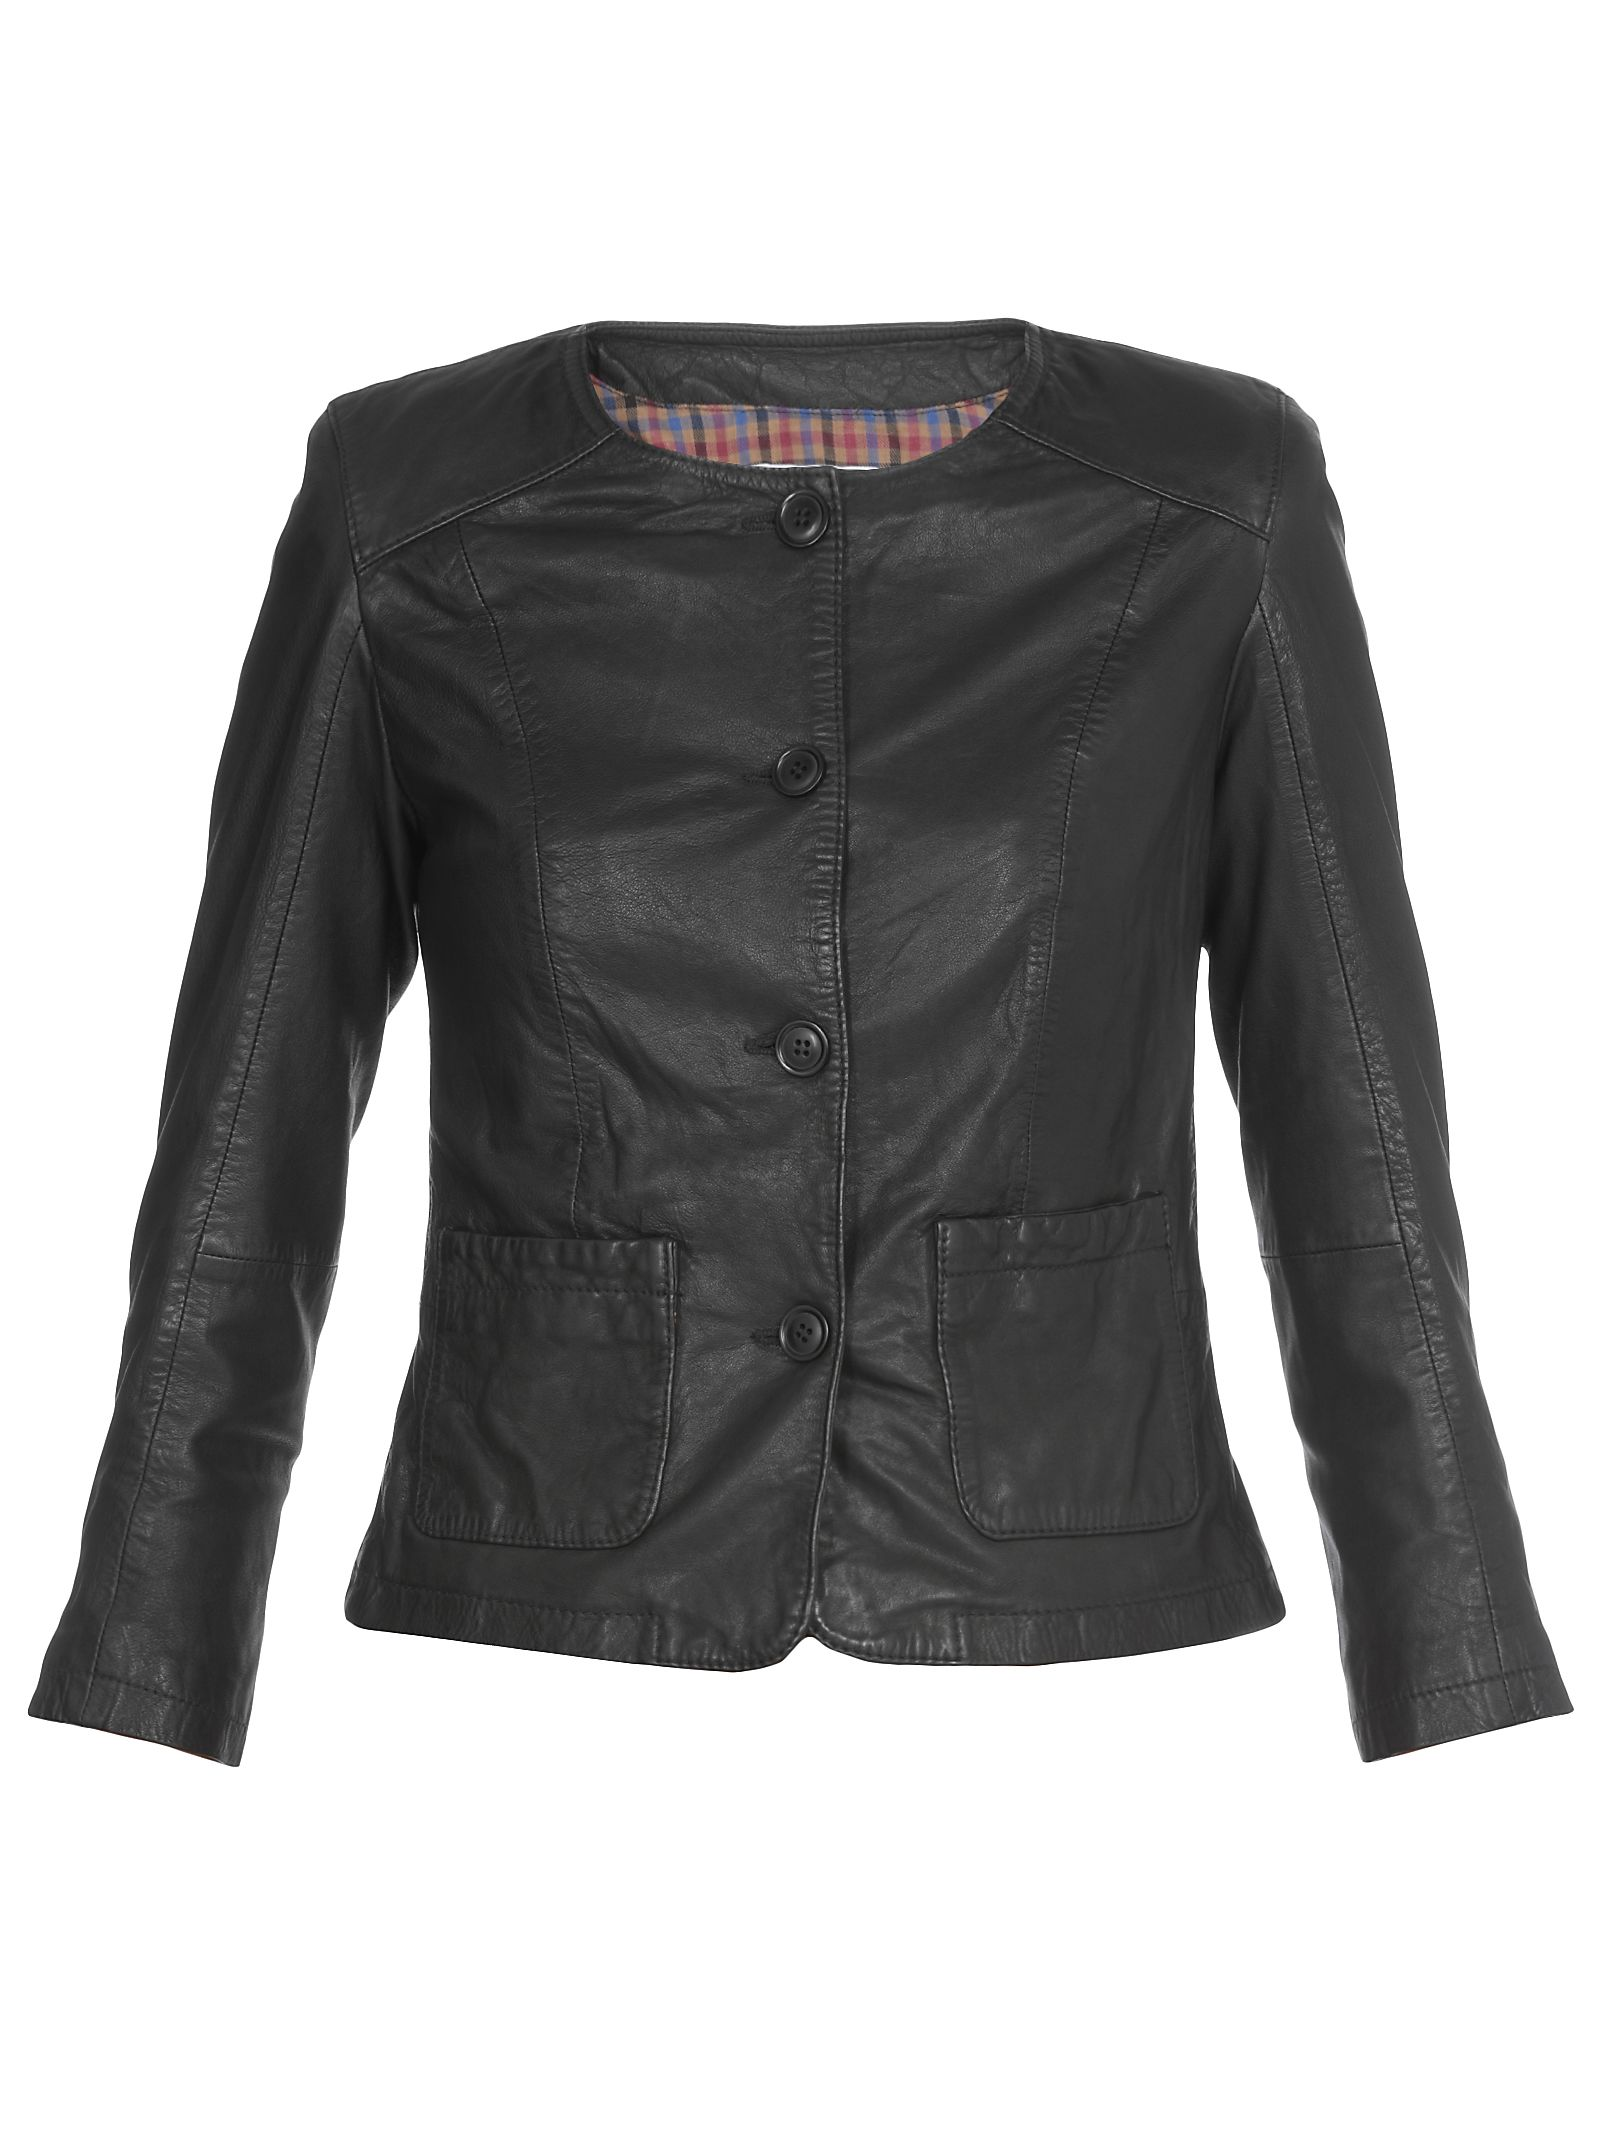 Bully CHANEL LEATHER JACKET